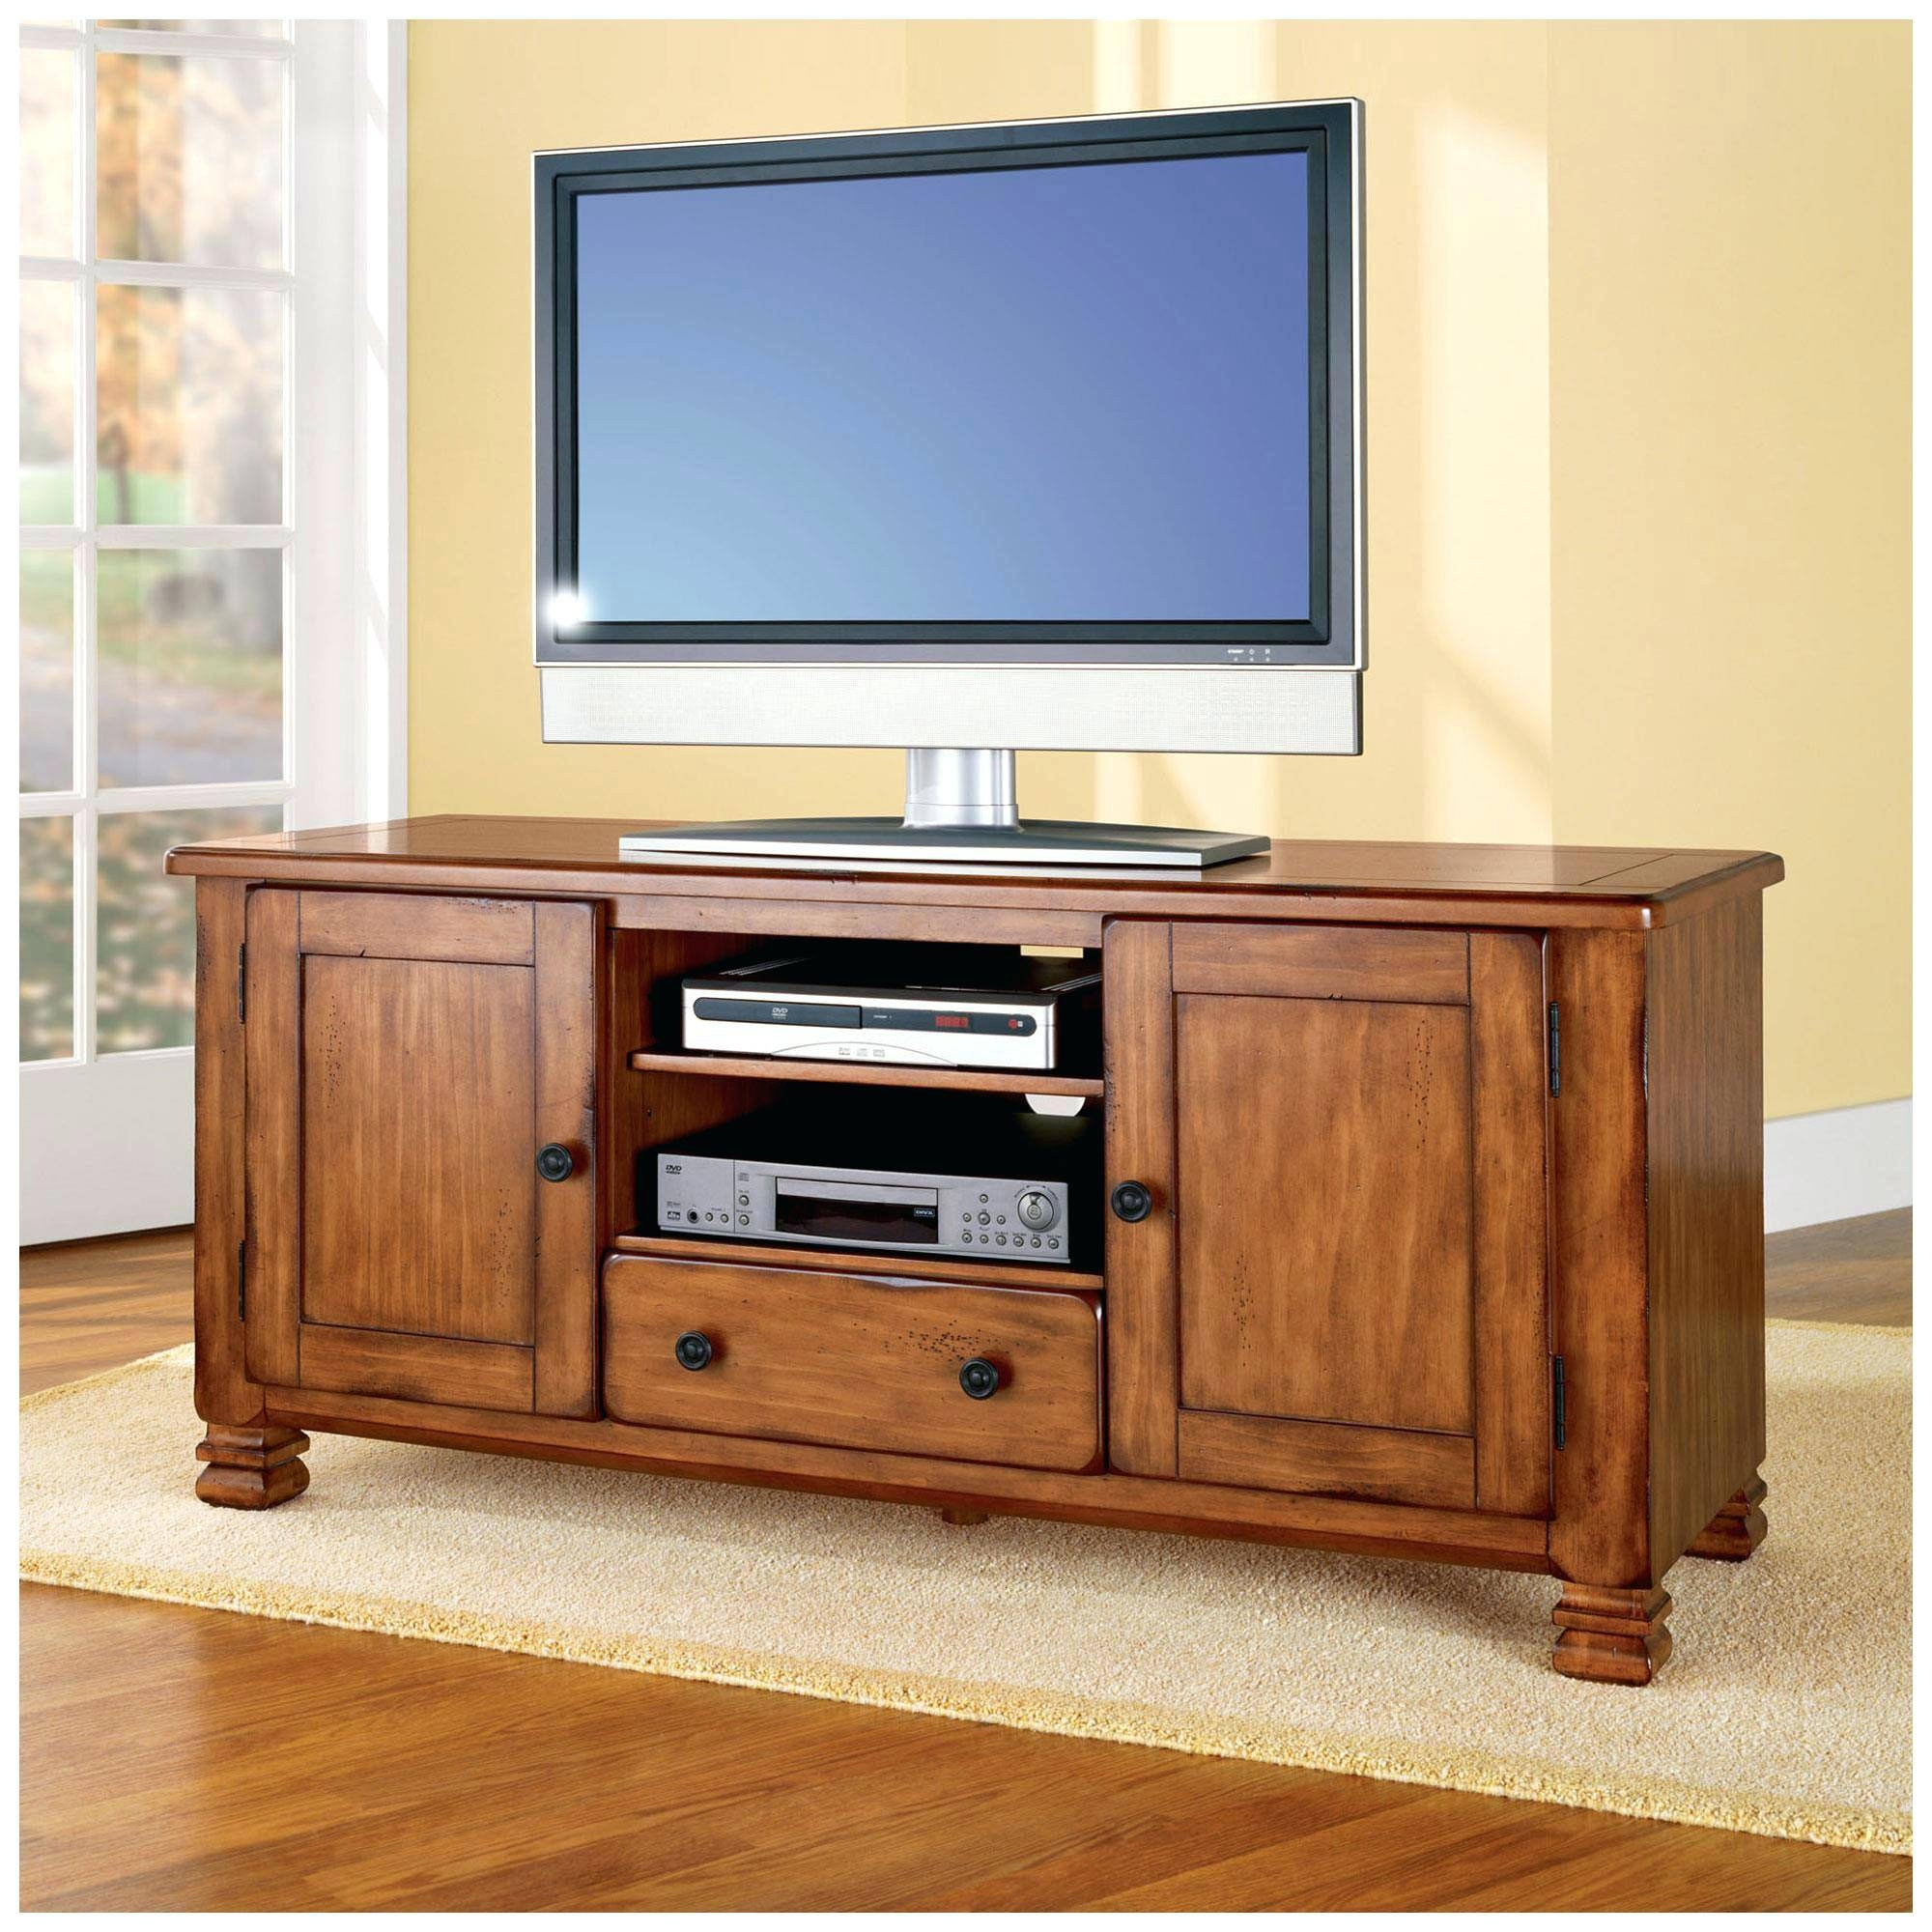 Tv Stand : Tv Stand For Living Space 47 Ergonomic Dakota Craftsman with regard to Tv Stands In Oak (Image 15 of 15)